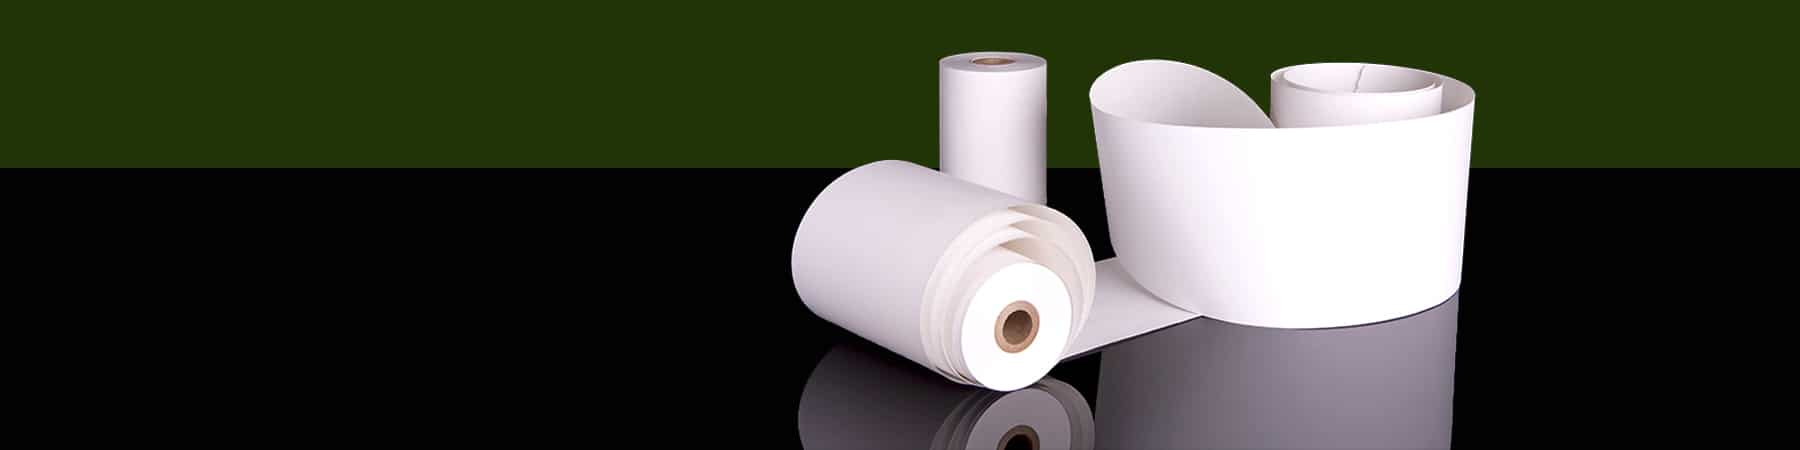 thermal roll, eftpos roll, register roll, cash register roll